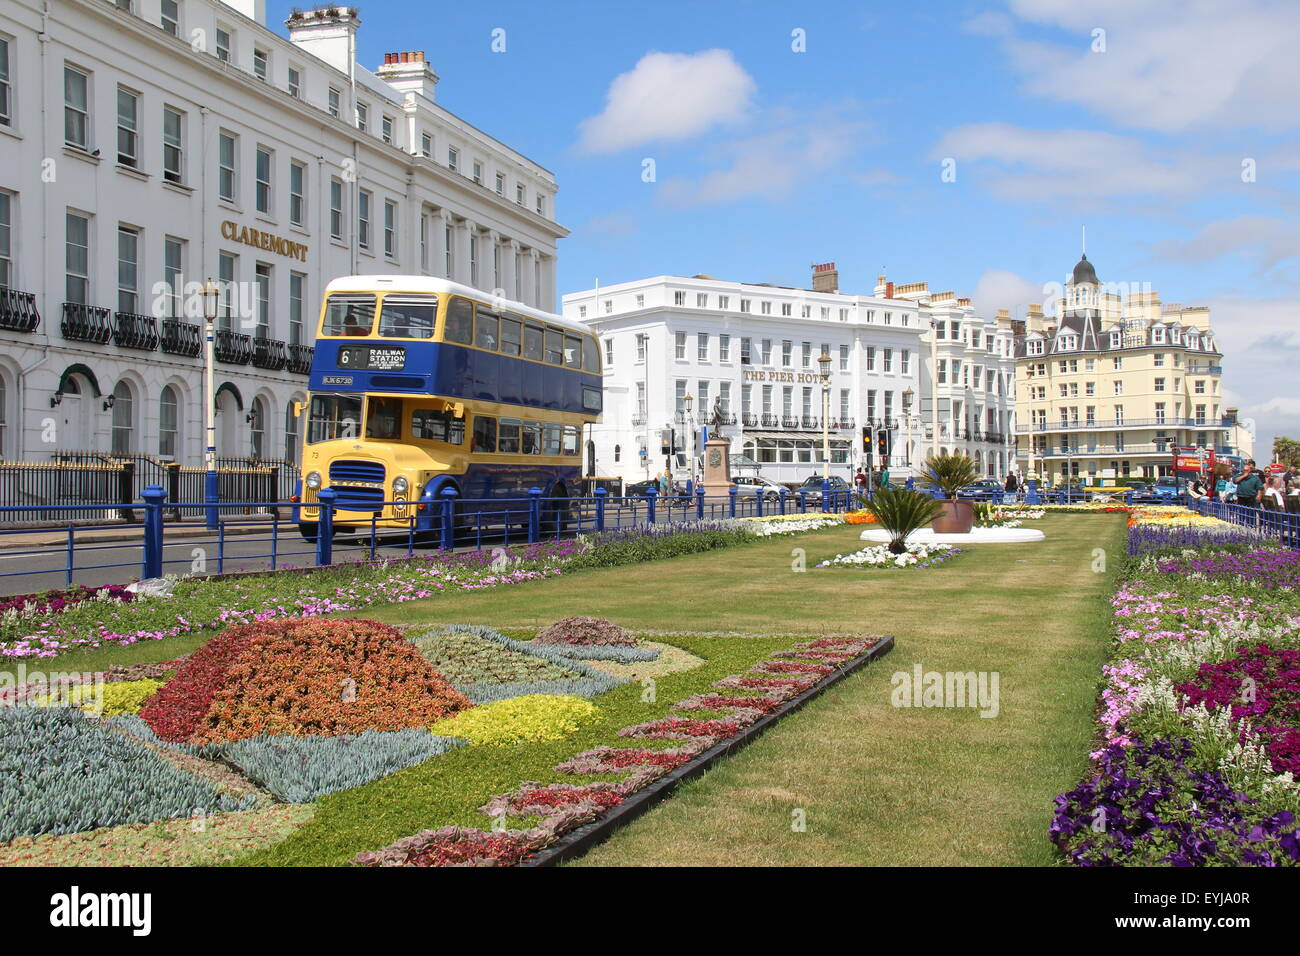 A VINTAGE EASTBOURNE CORPORATION LEYLAND TITAN DOUBLE DECK BUS ON EASTBOURNE SEAFRONT IN EAST SUSSEX IN THE UK - Stock Image